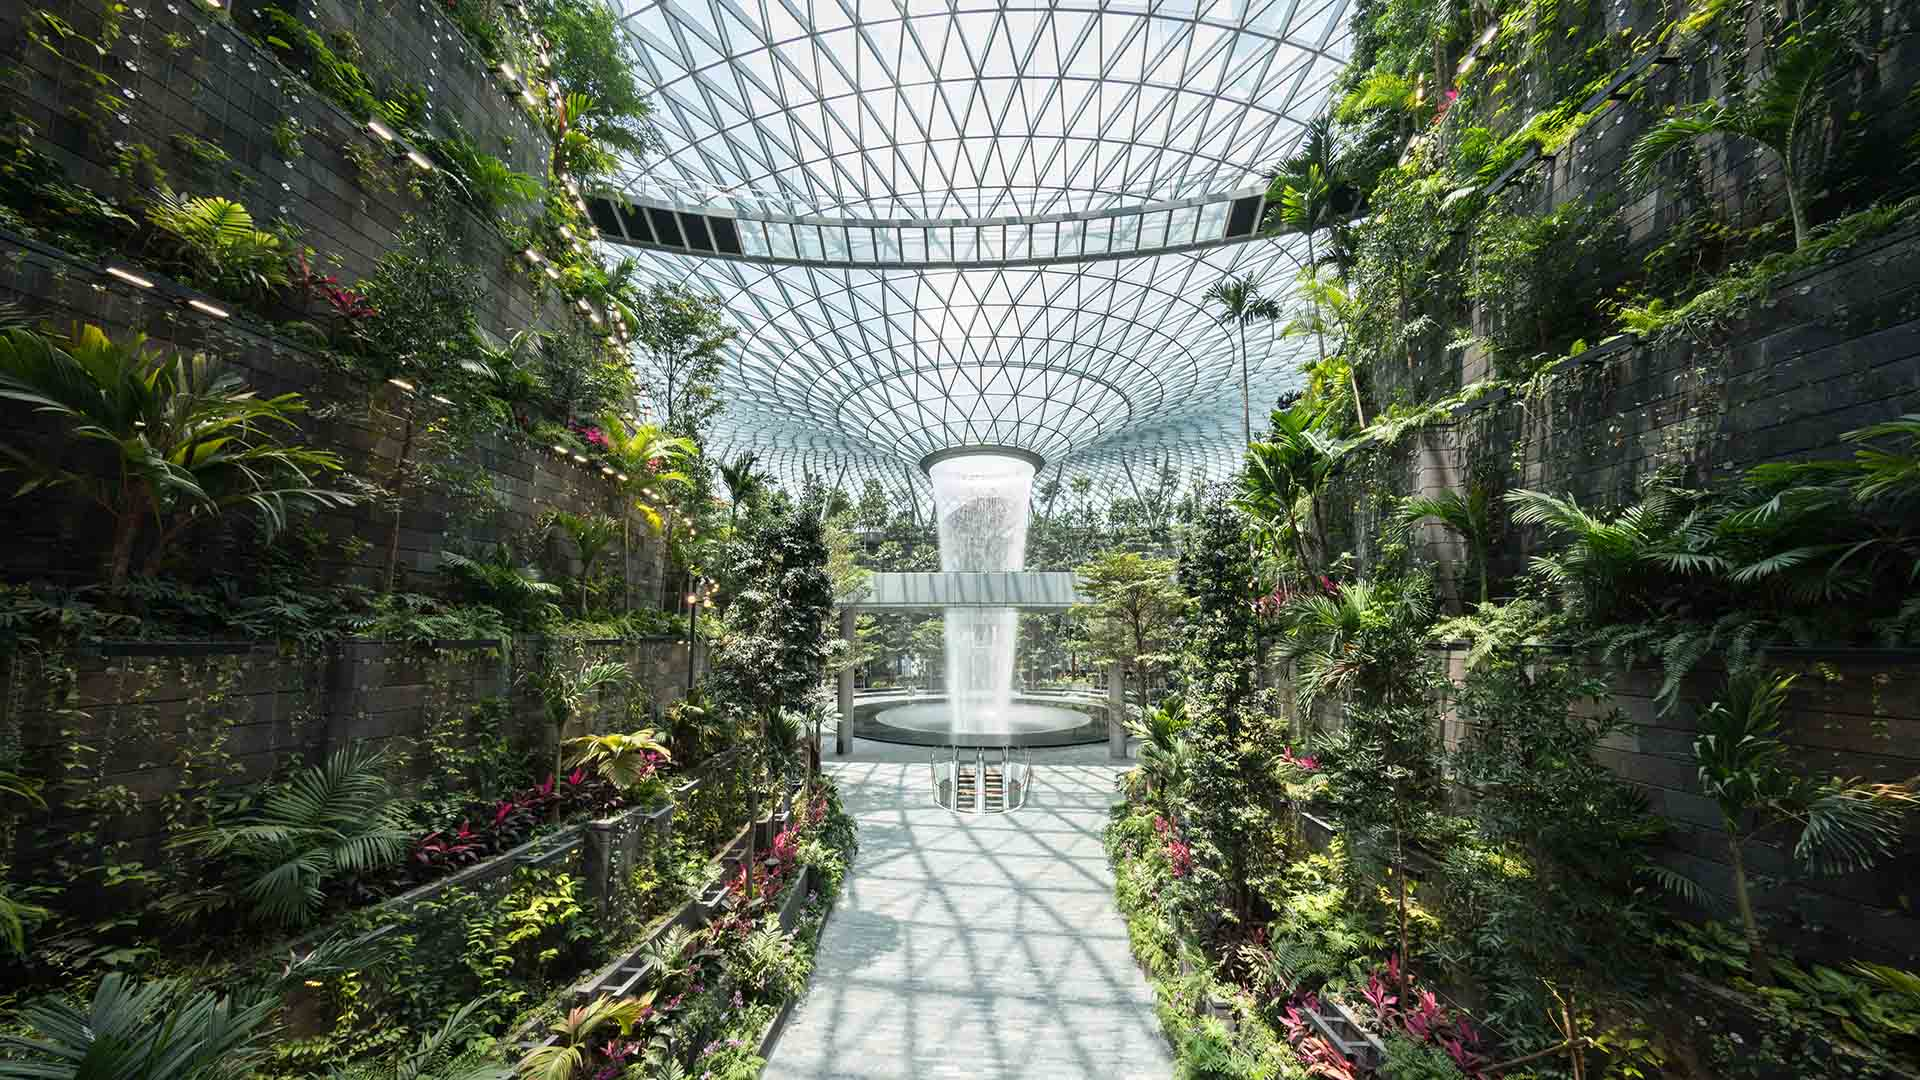 The World's Tallest Indoor Waterfall Is Now Open Inside Singapore's Changi Airport